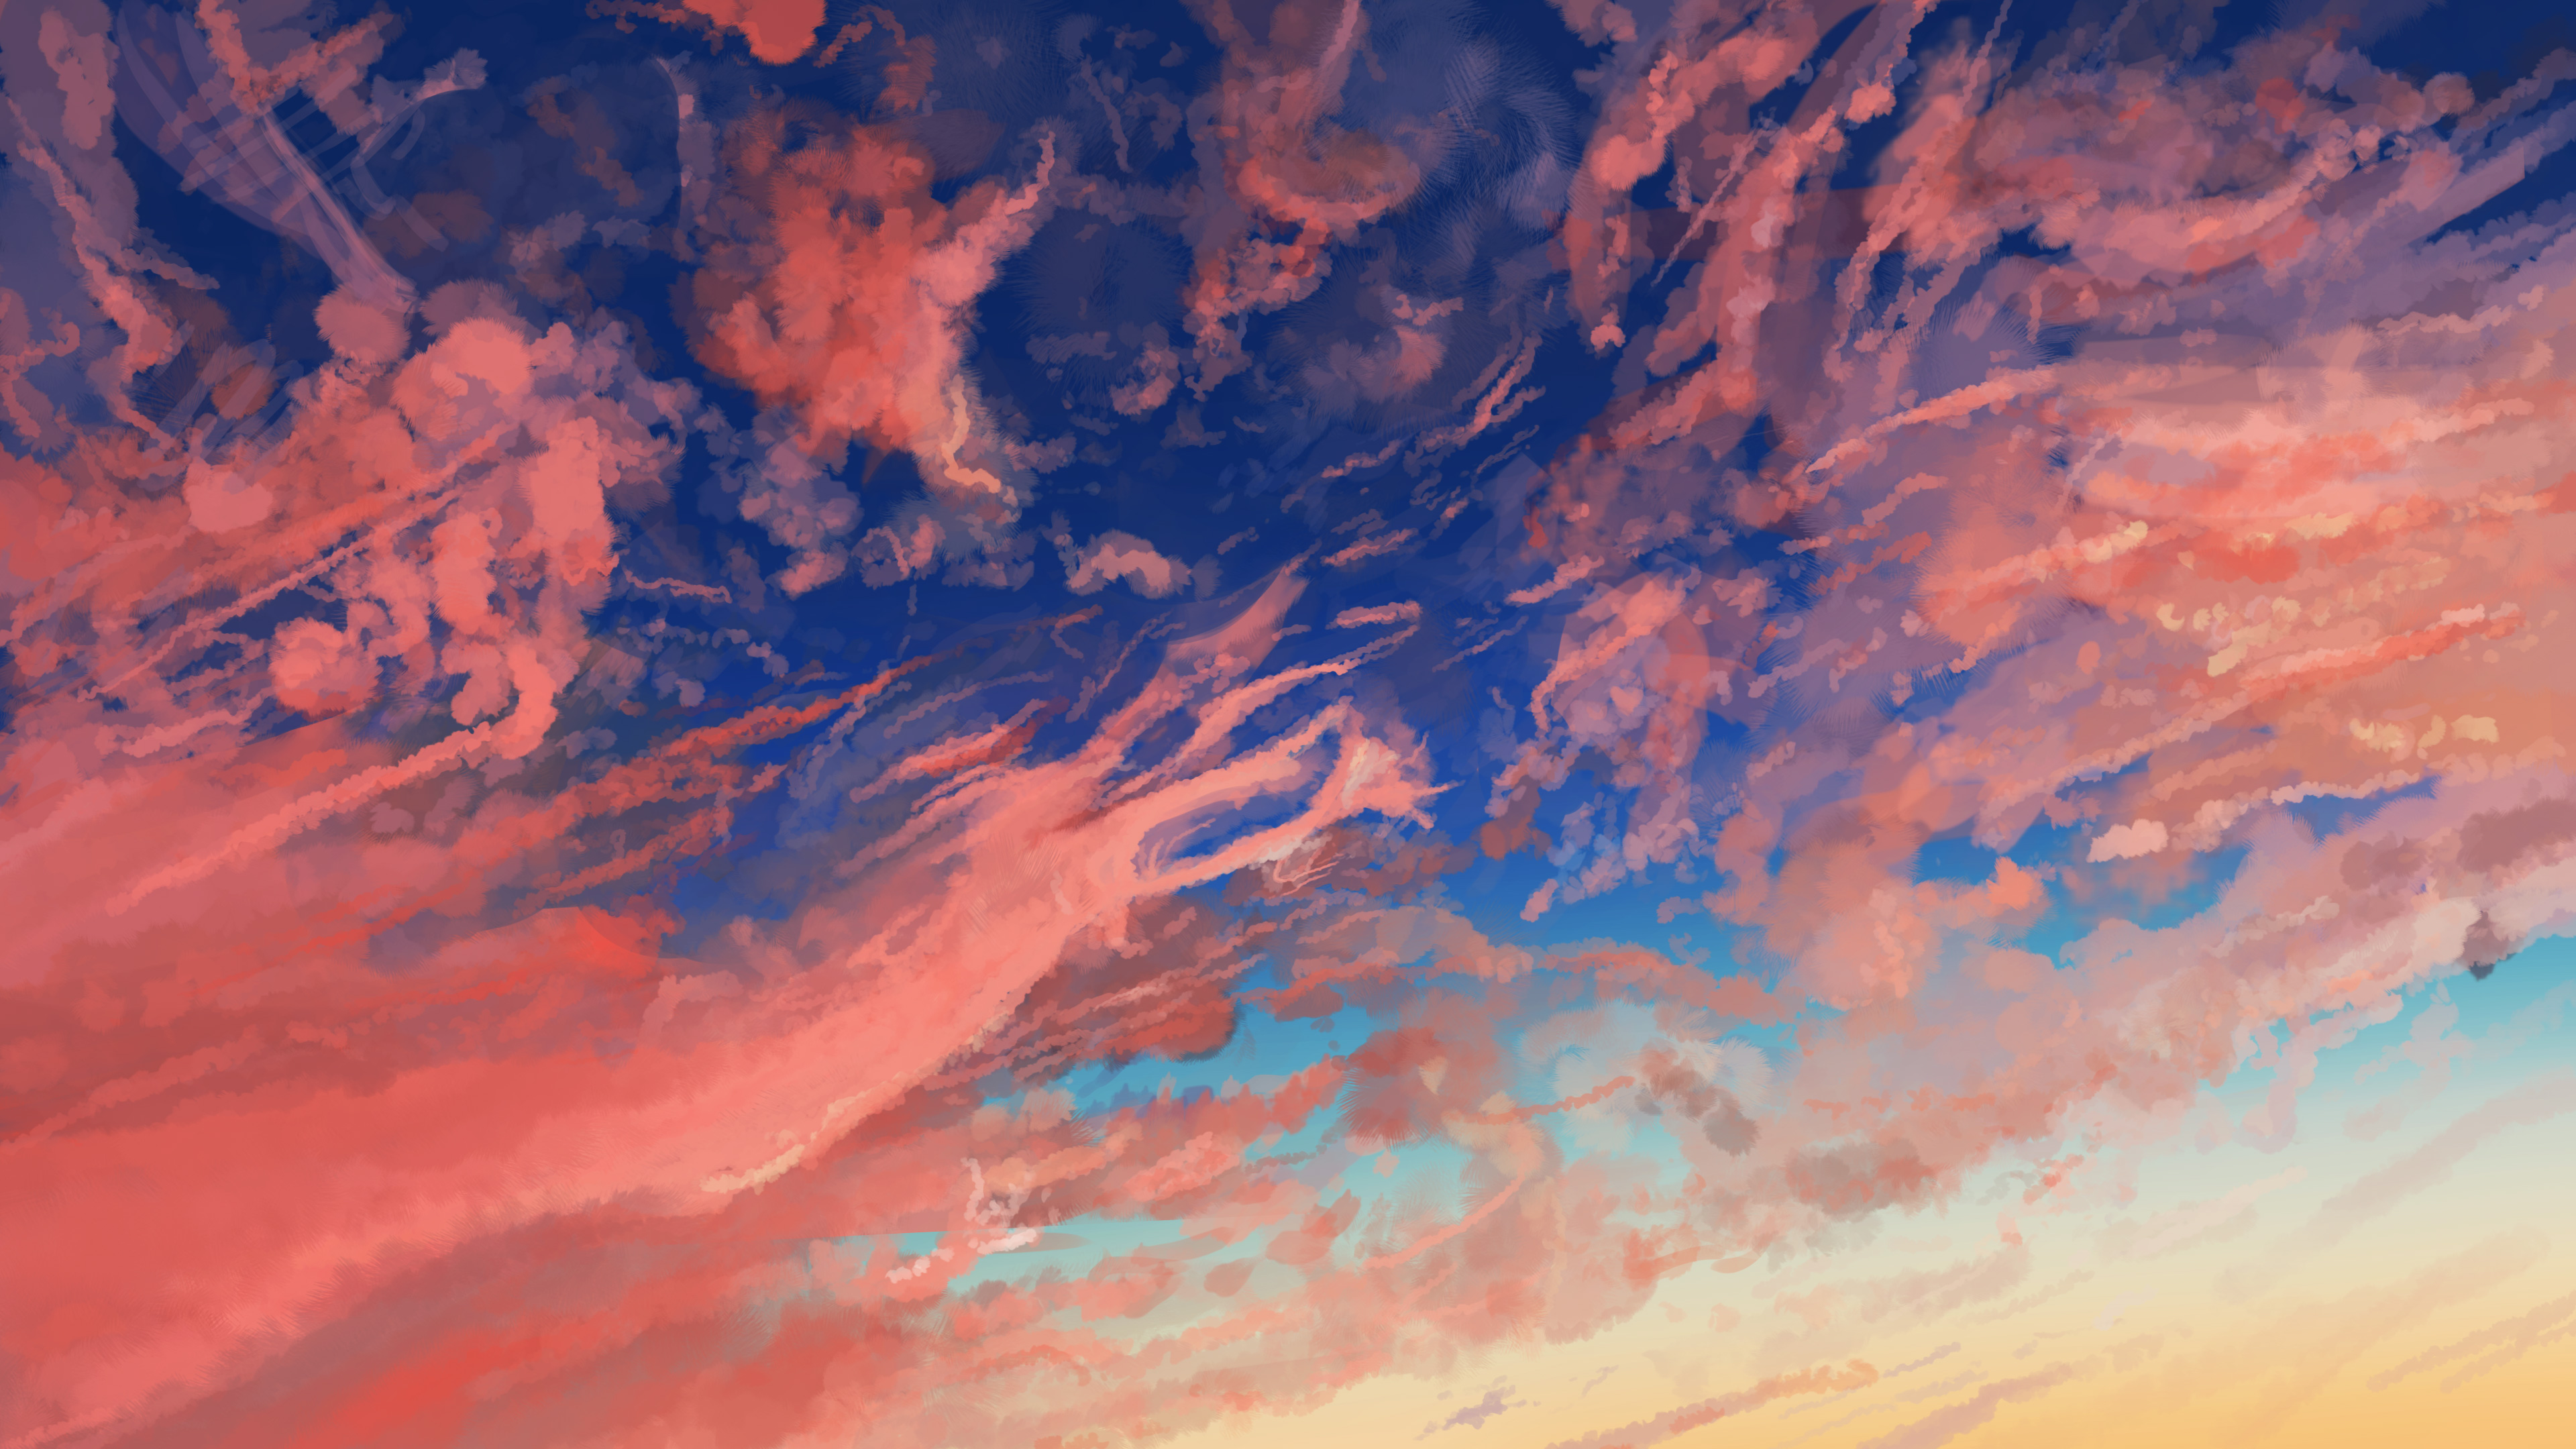 Sky Anime Cloud Sky Anime Hd Anime 4k Wallpapers Images Backgrounds